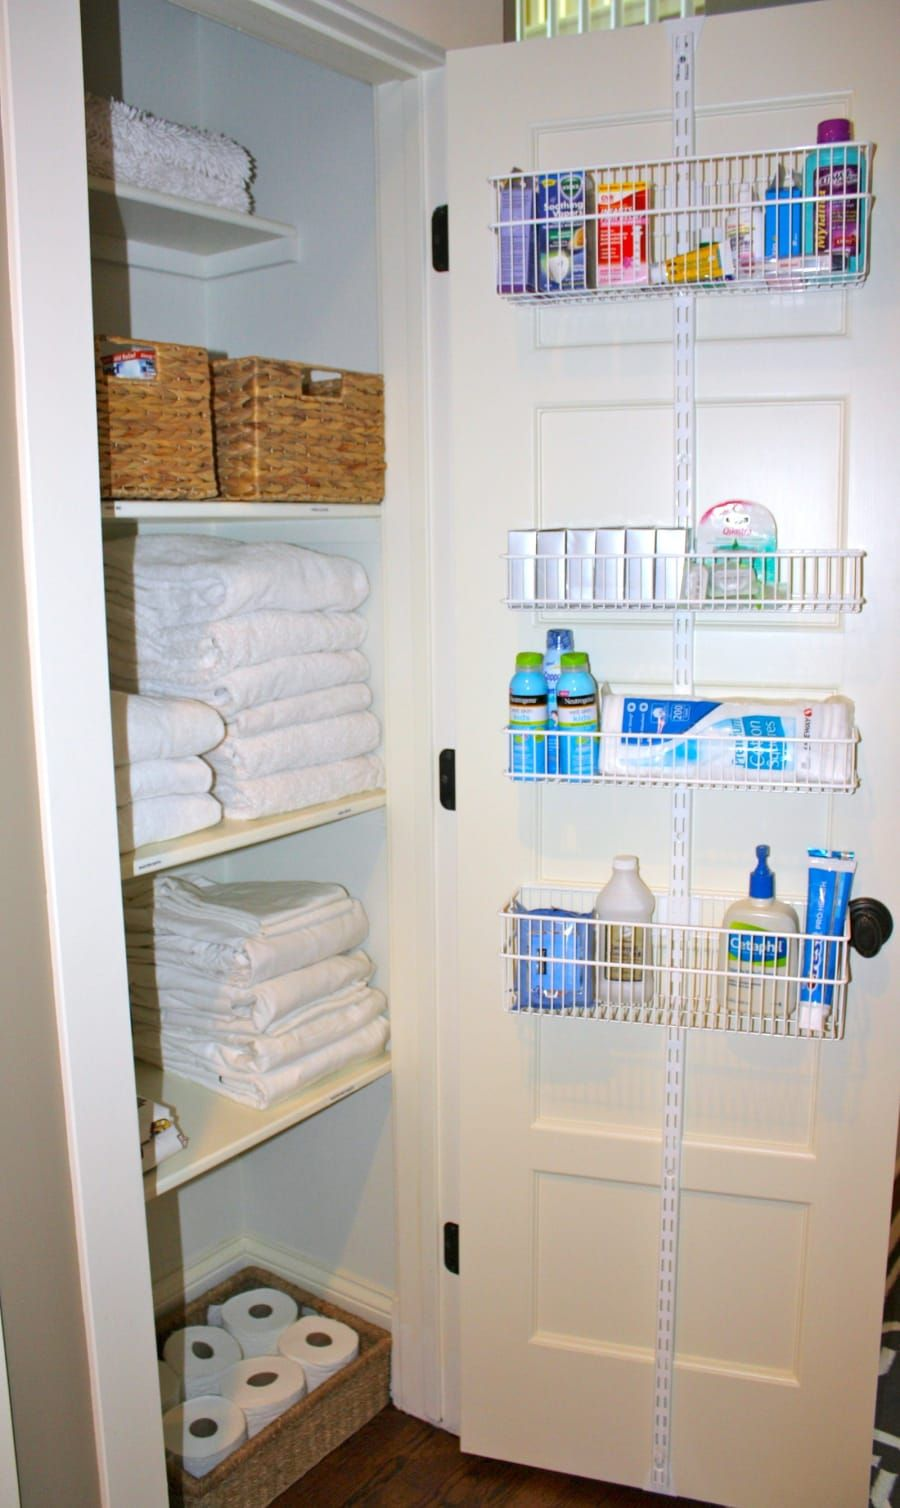 42 Clever Organizing Ideas To Make Your Life So Much Easier ...